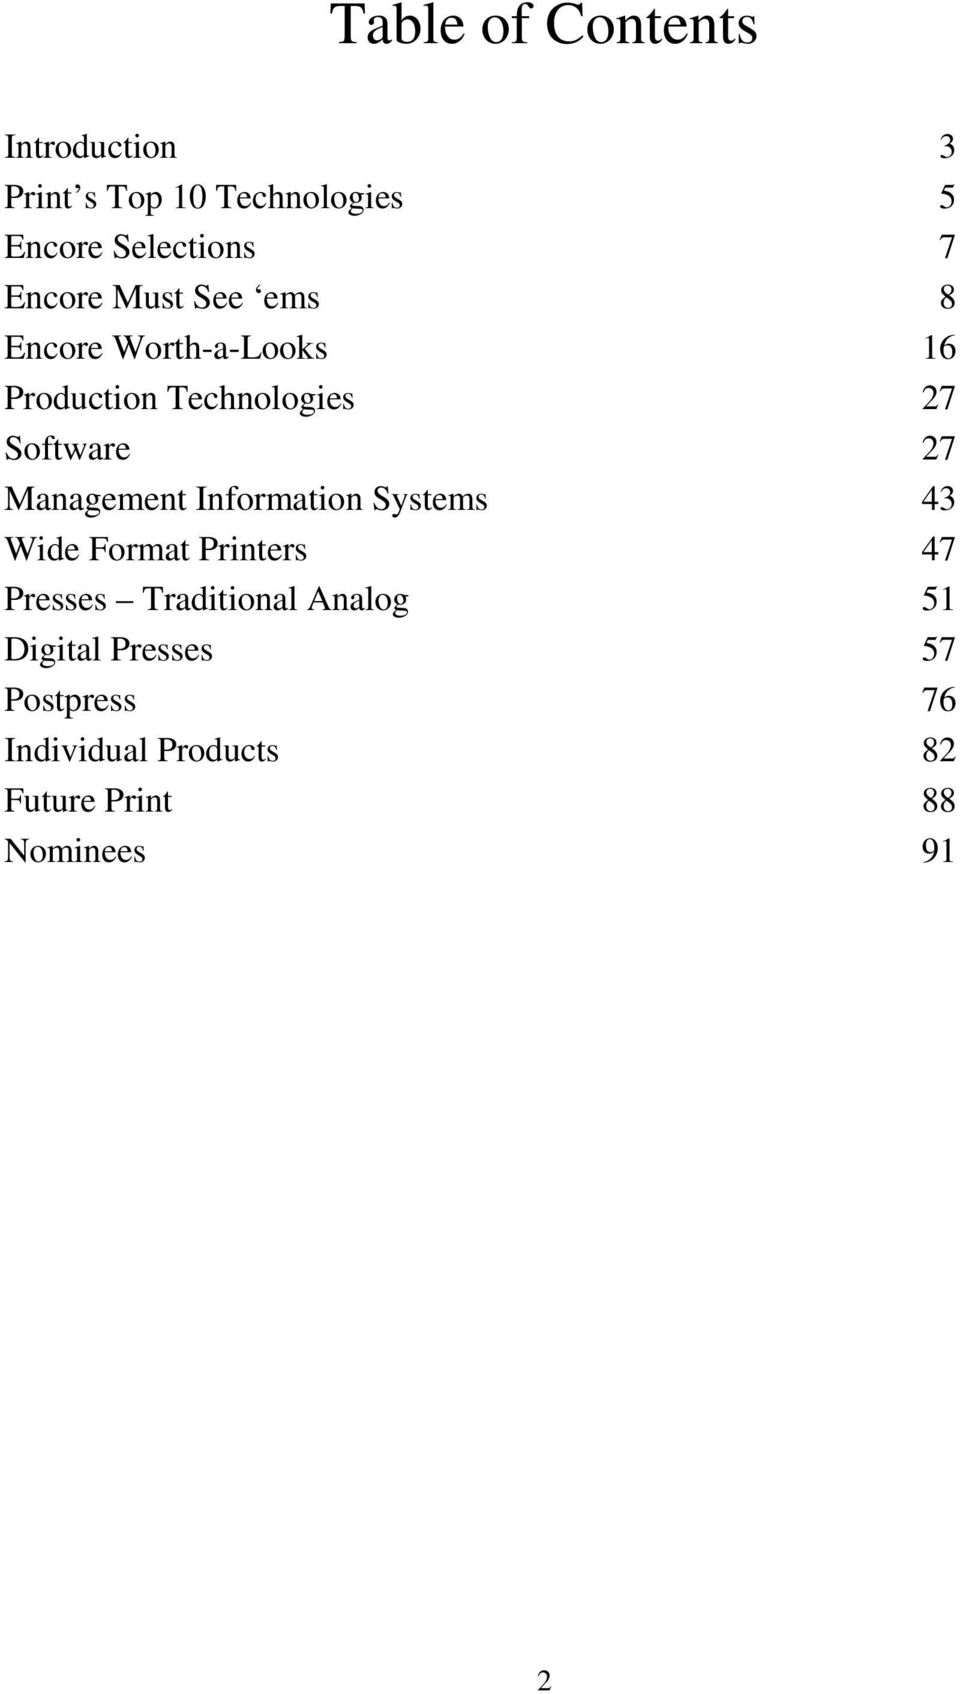 Management Information Systems 43 Wide Format Printers 47 Presses Traditional Analog